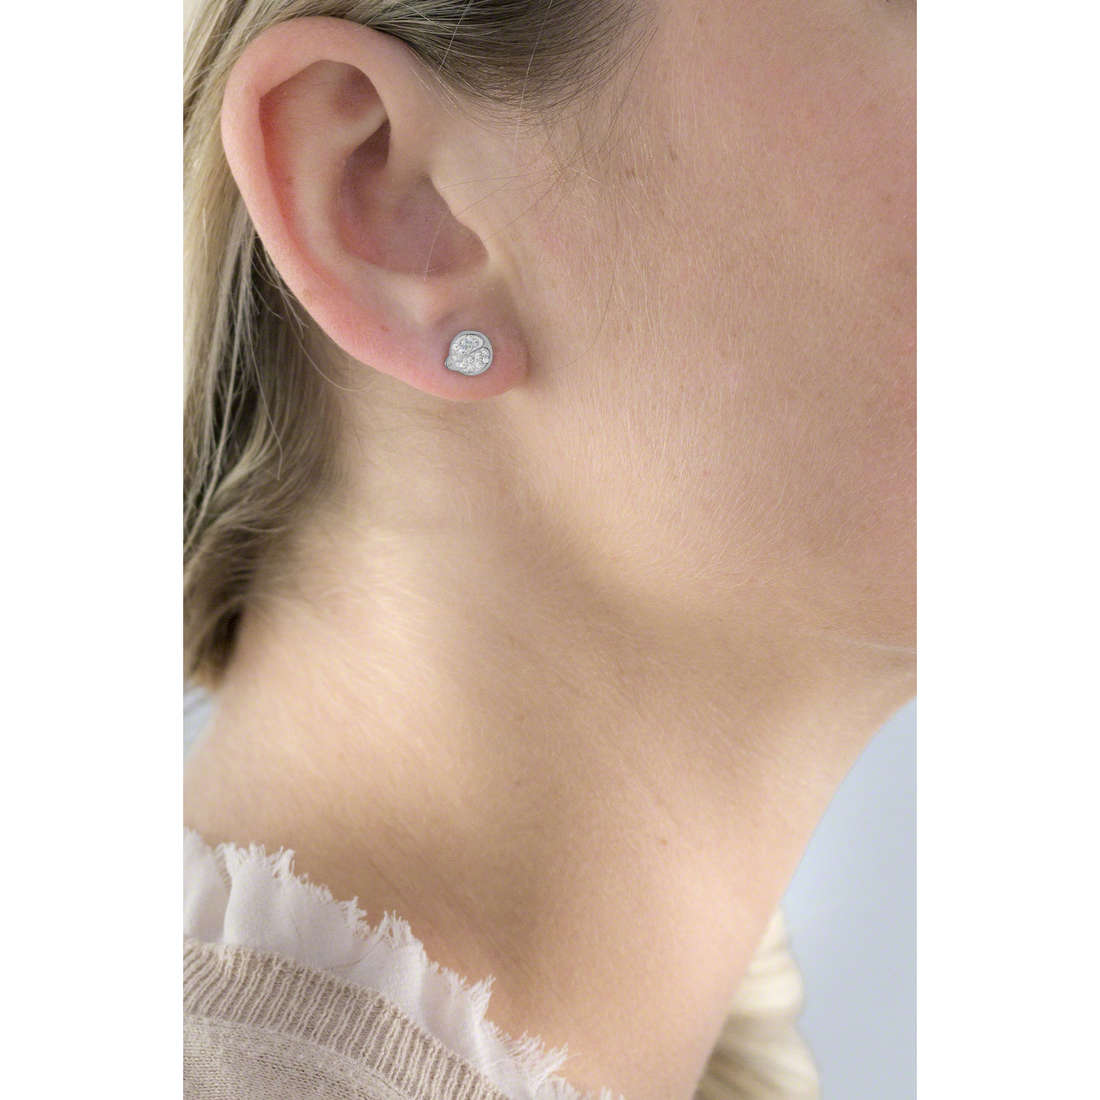 Marlù boucles d'oreille Time To femme 18OR026 indosso